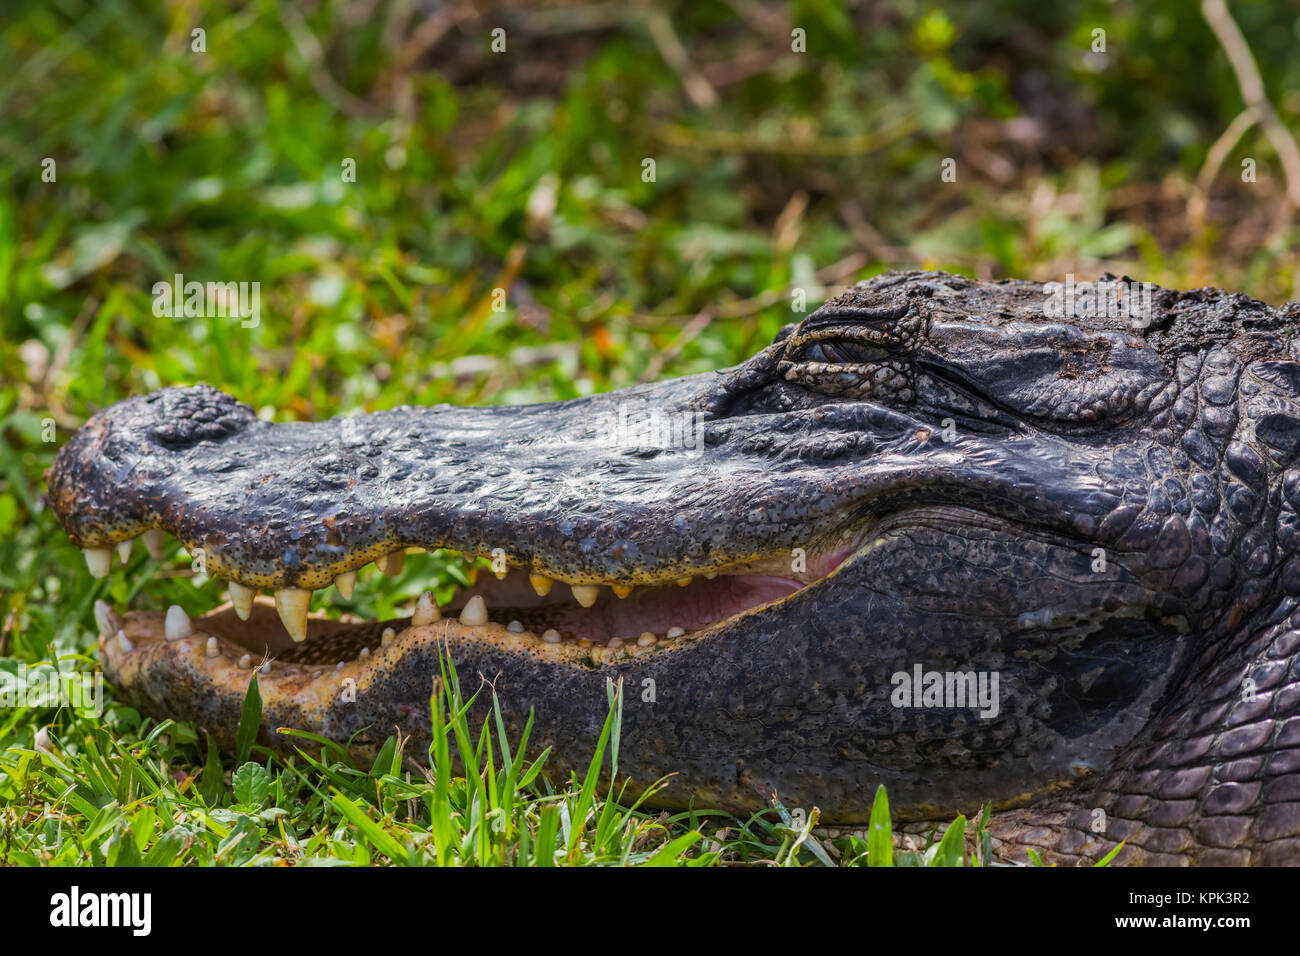 An American Alligator (Alligator mississippiensis) basks in the sun in Shark Valley, Everglades National Park; Florida, - Stock Image